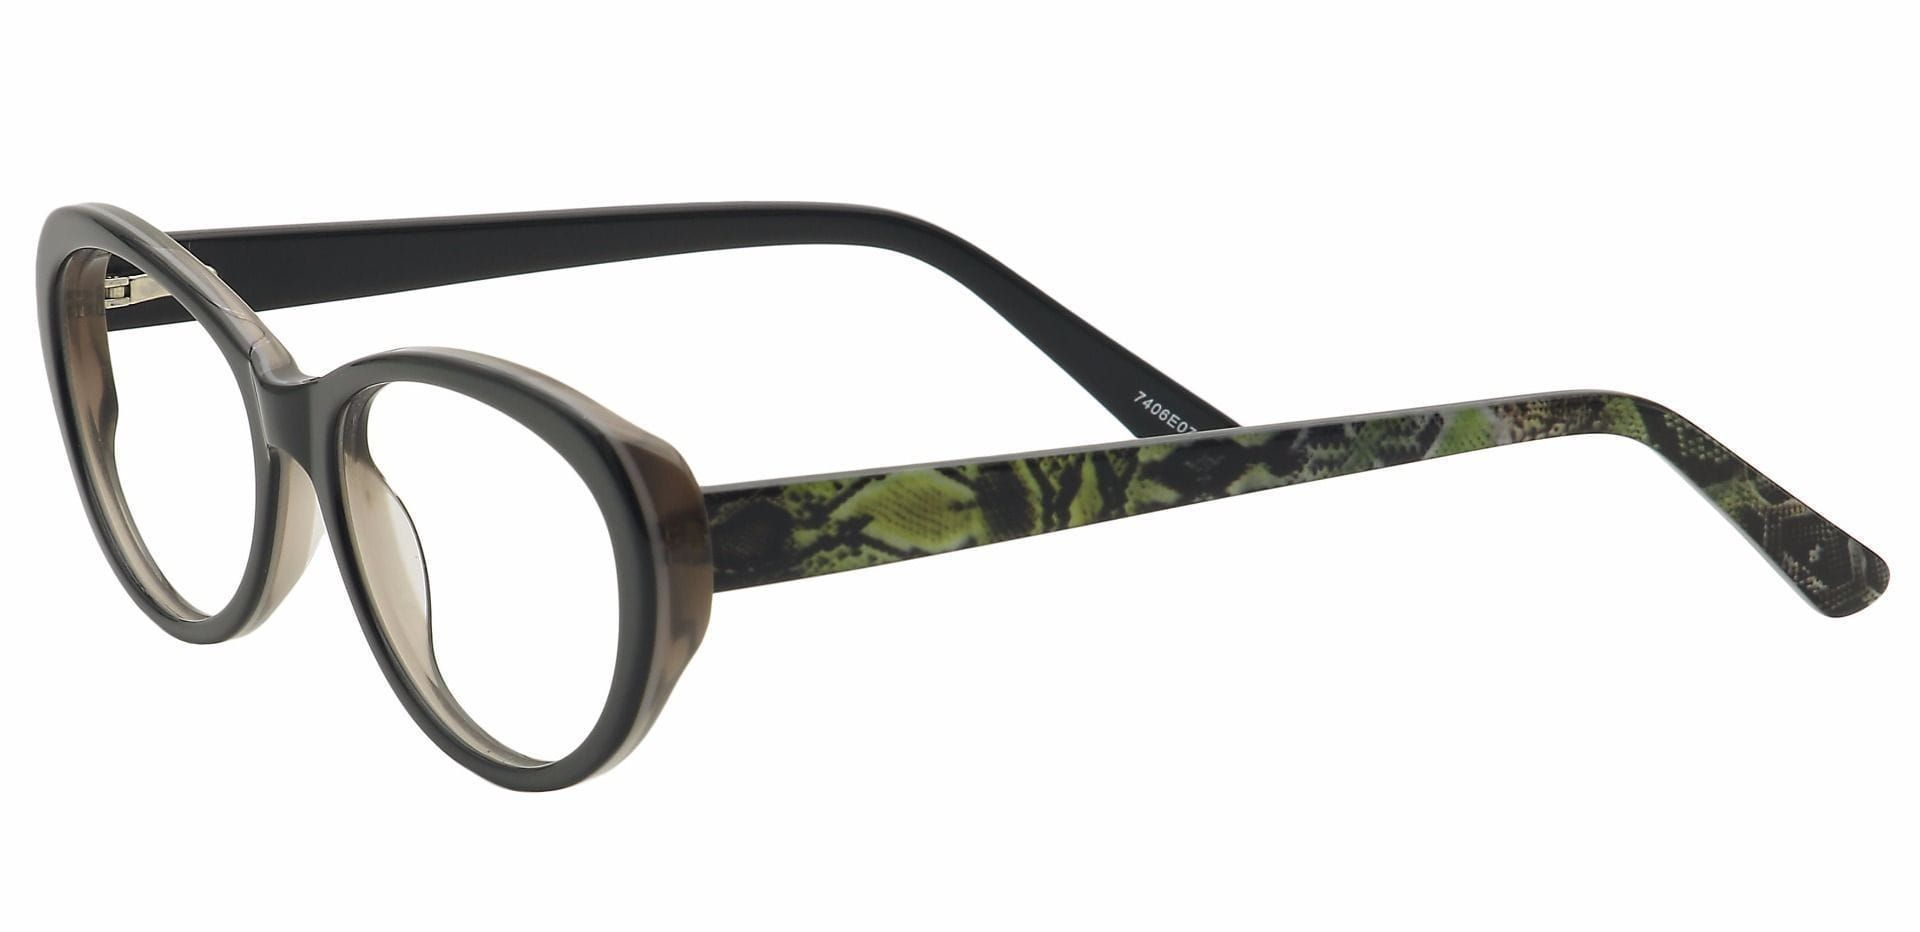 Asta Cat-Eye Reading Glasses - Black